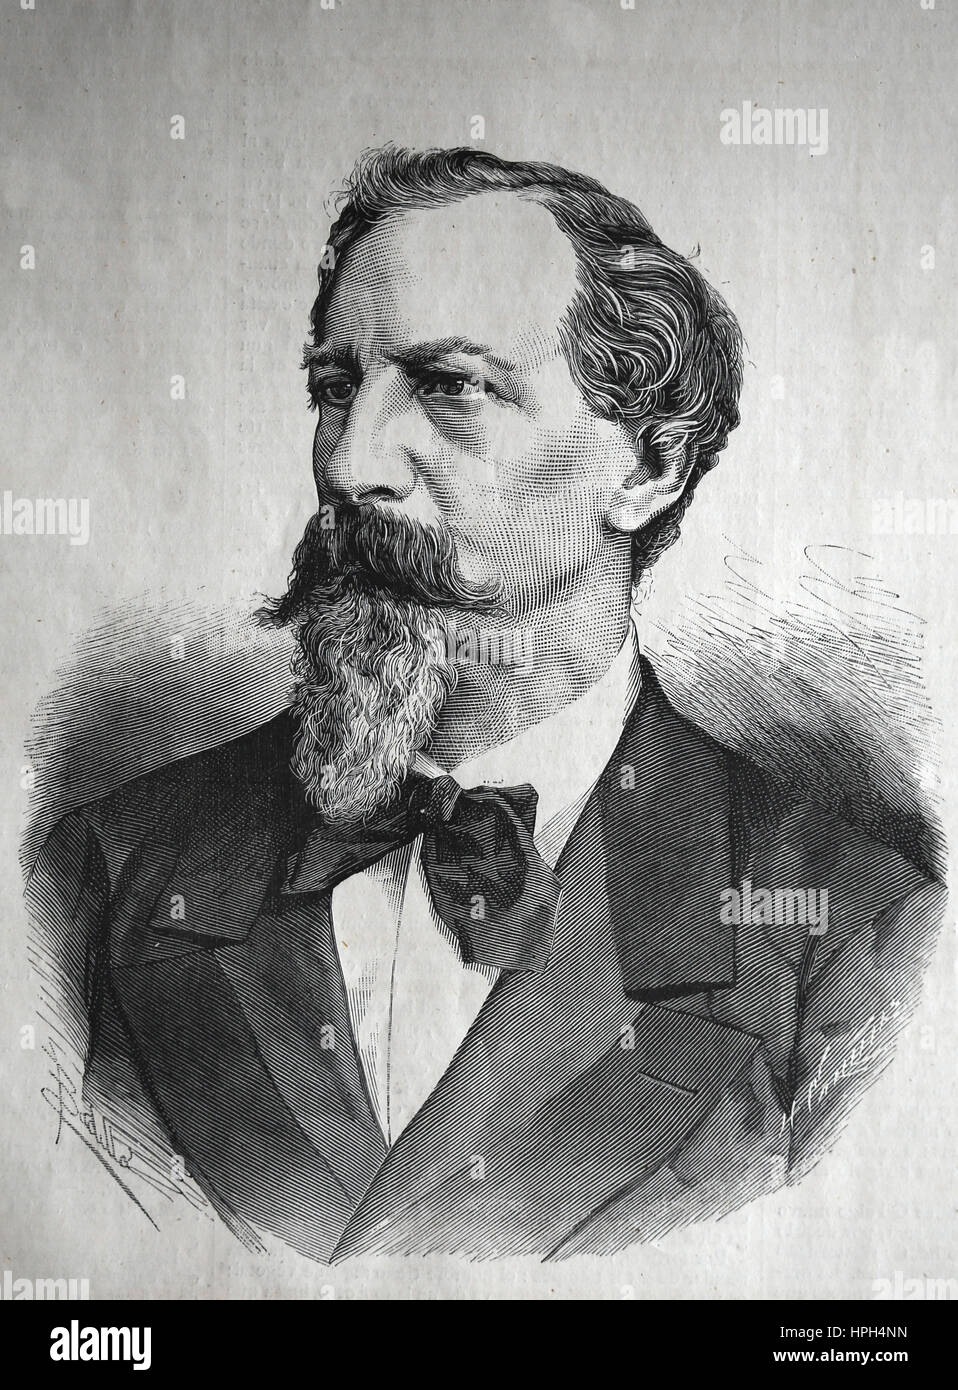 Ferdinand II of Portugal (1816-1885). Portrait. Engraving, 1882. The Spanish and American Illustration, 1882. Spain. - Stock Image